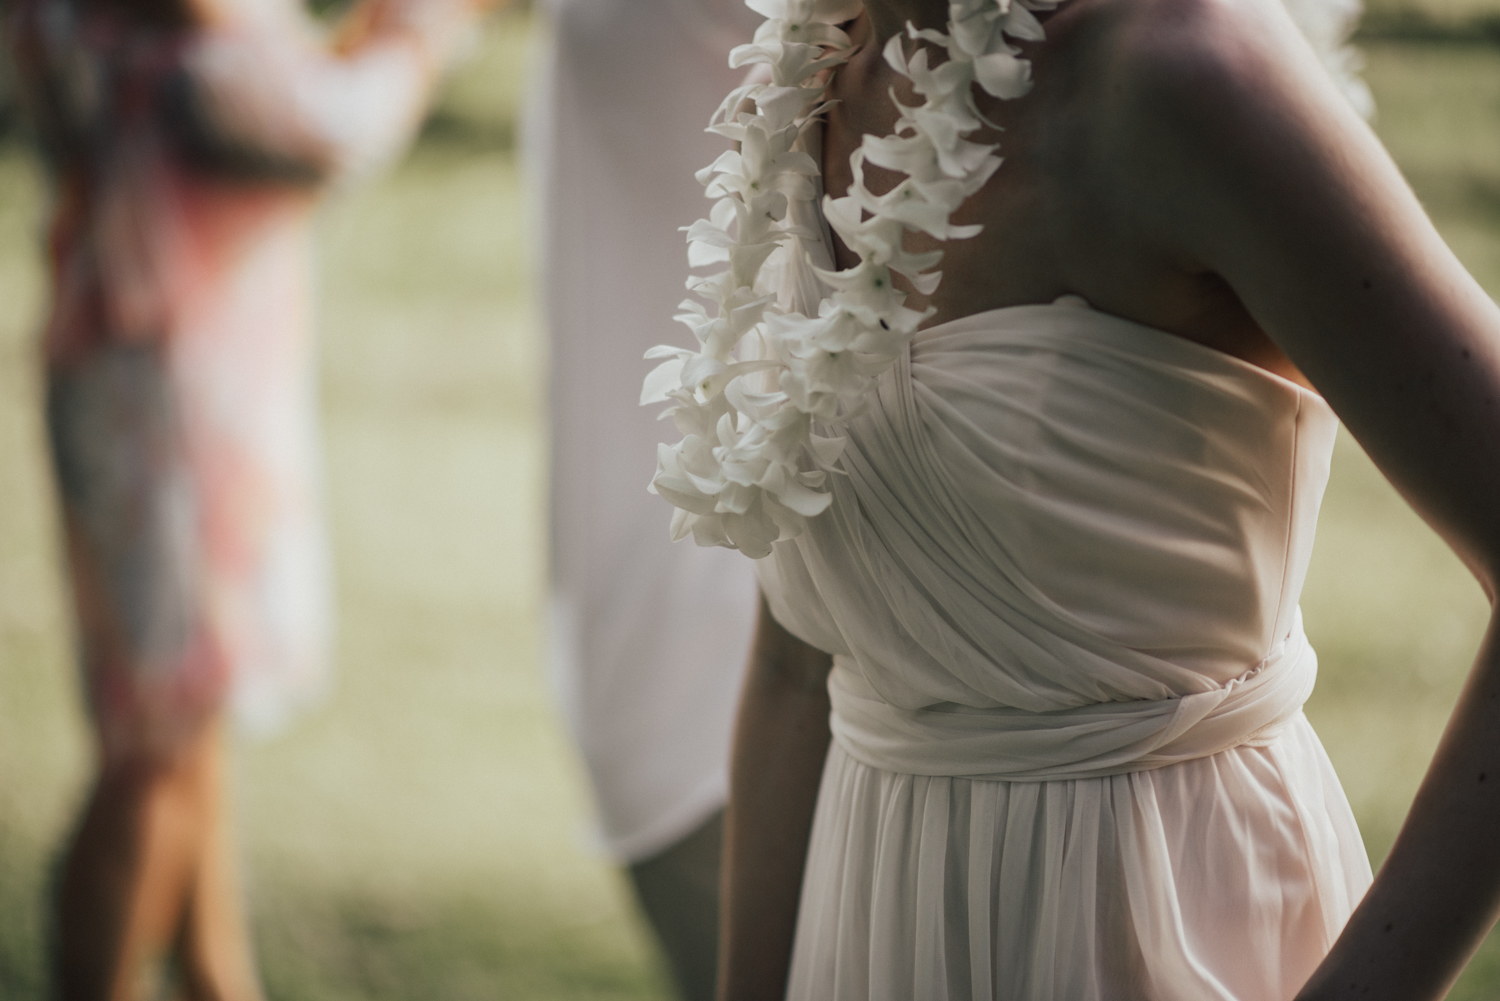 Kauai-elopement-photographer-22.jpg